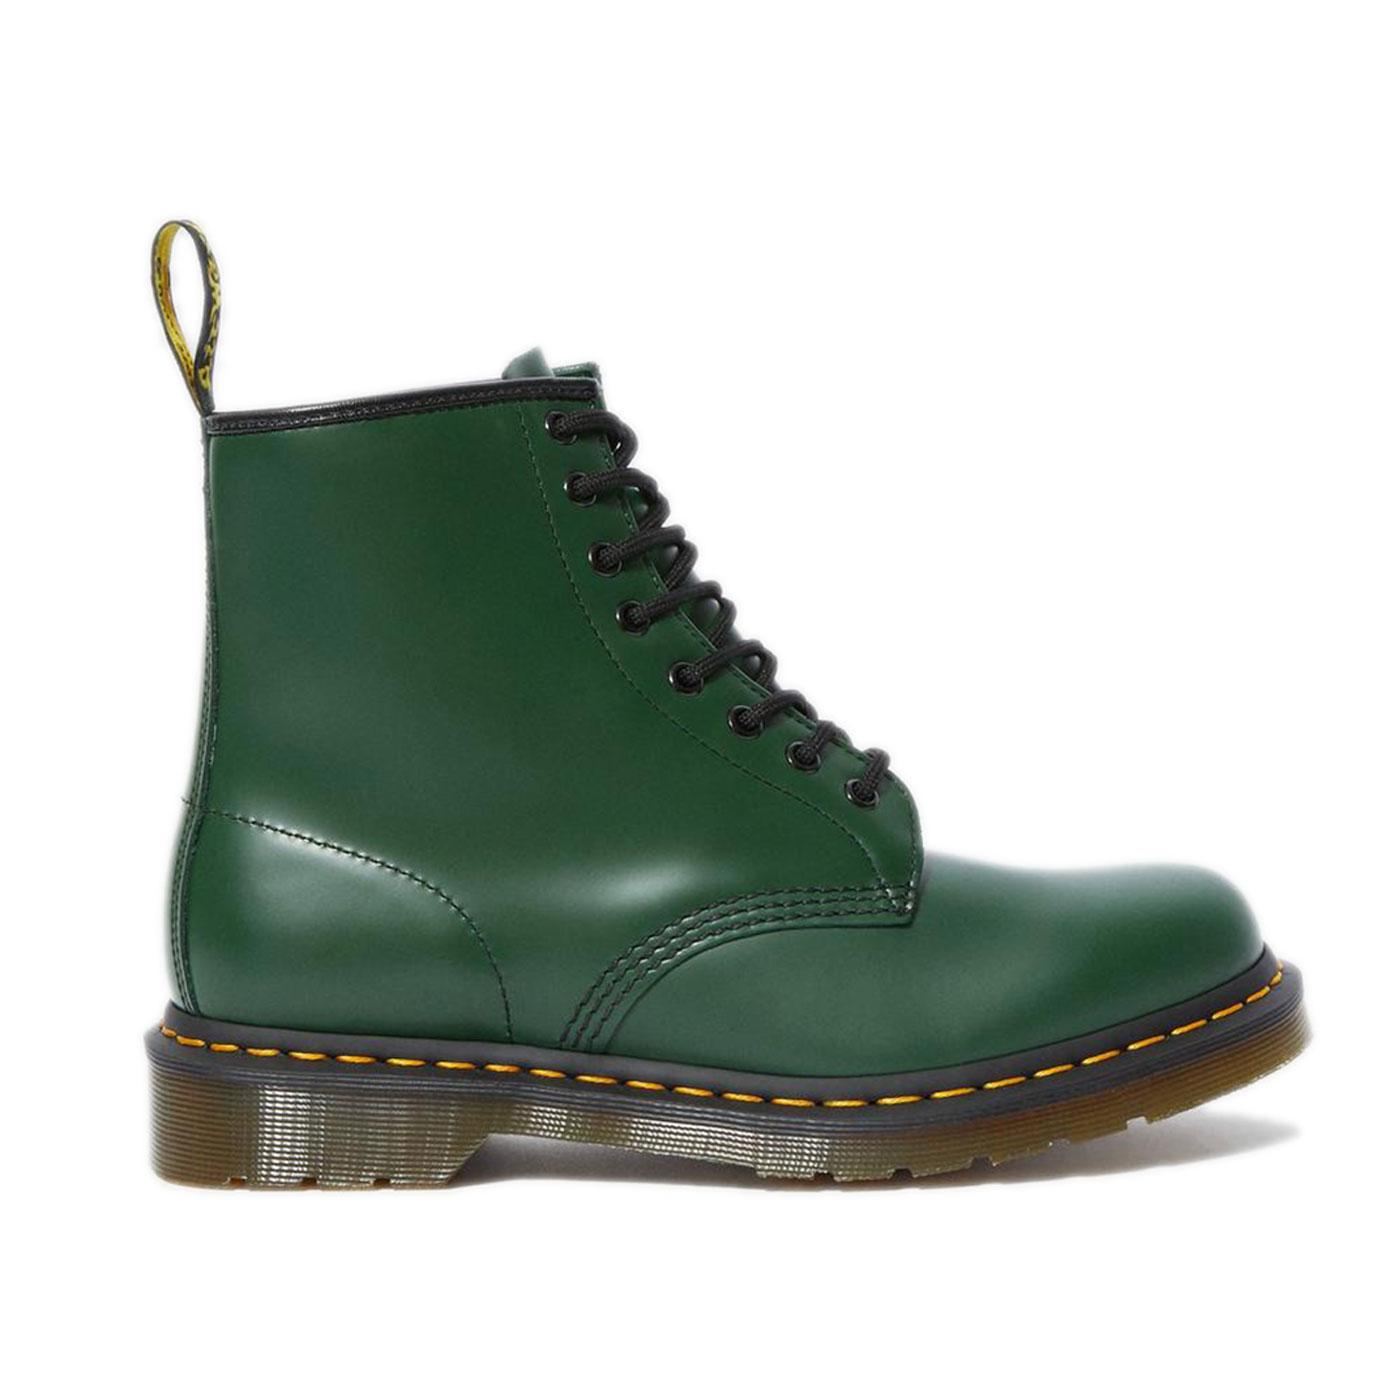 1460 Smooth DR MARTENS Women's Green Boots